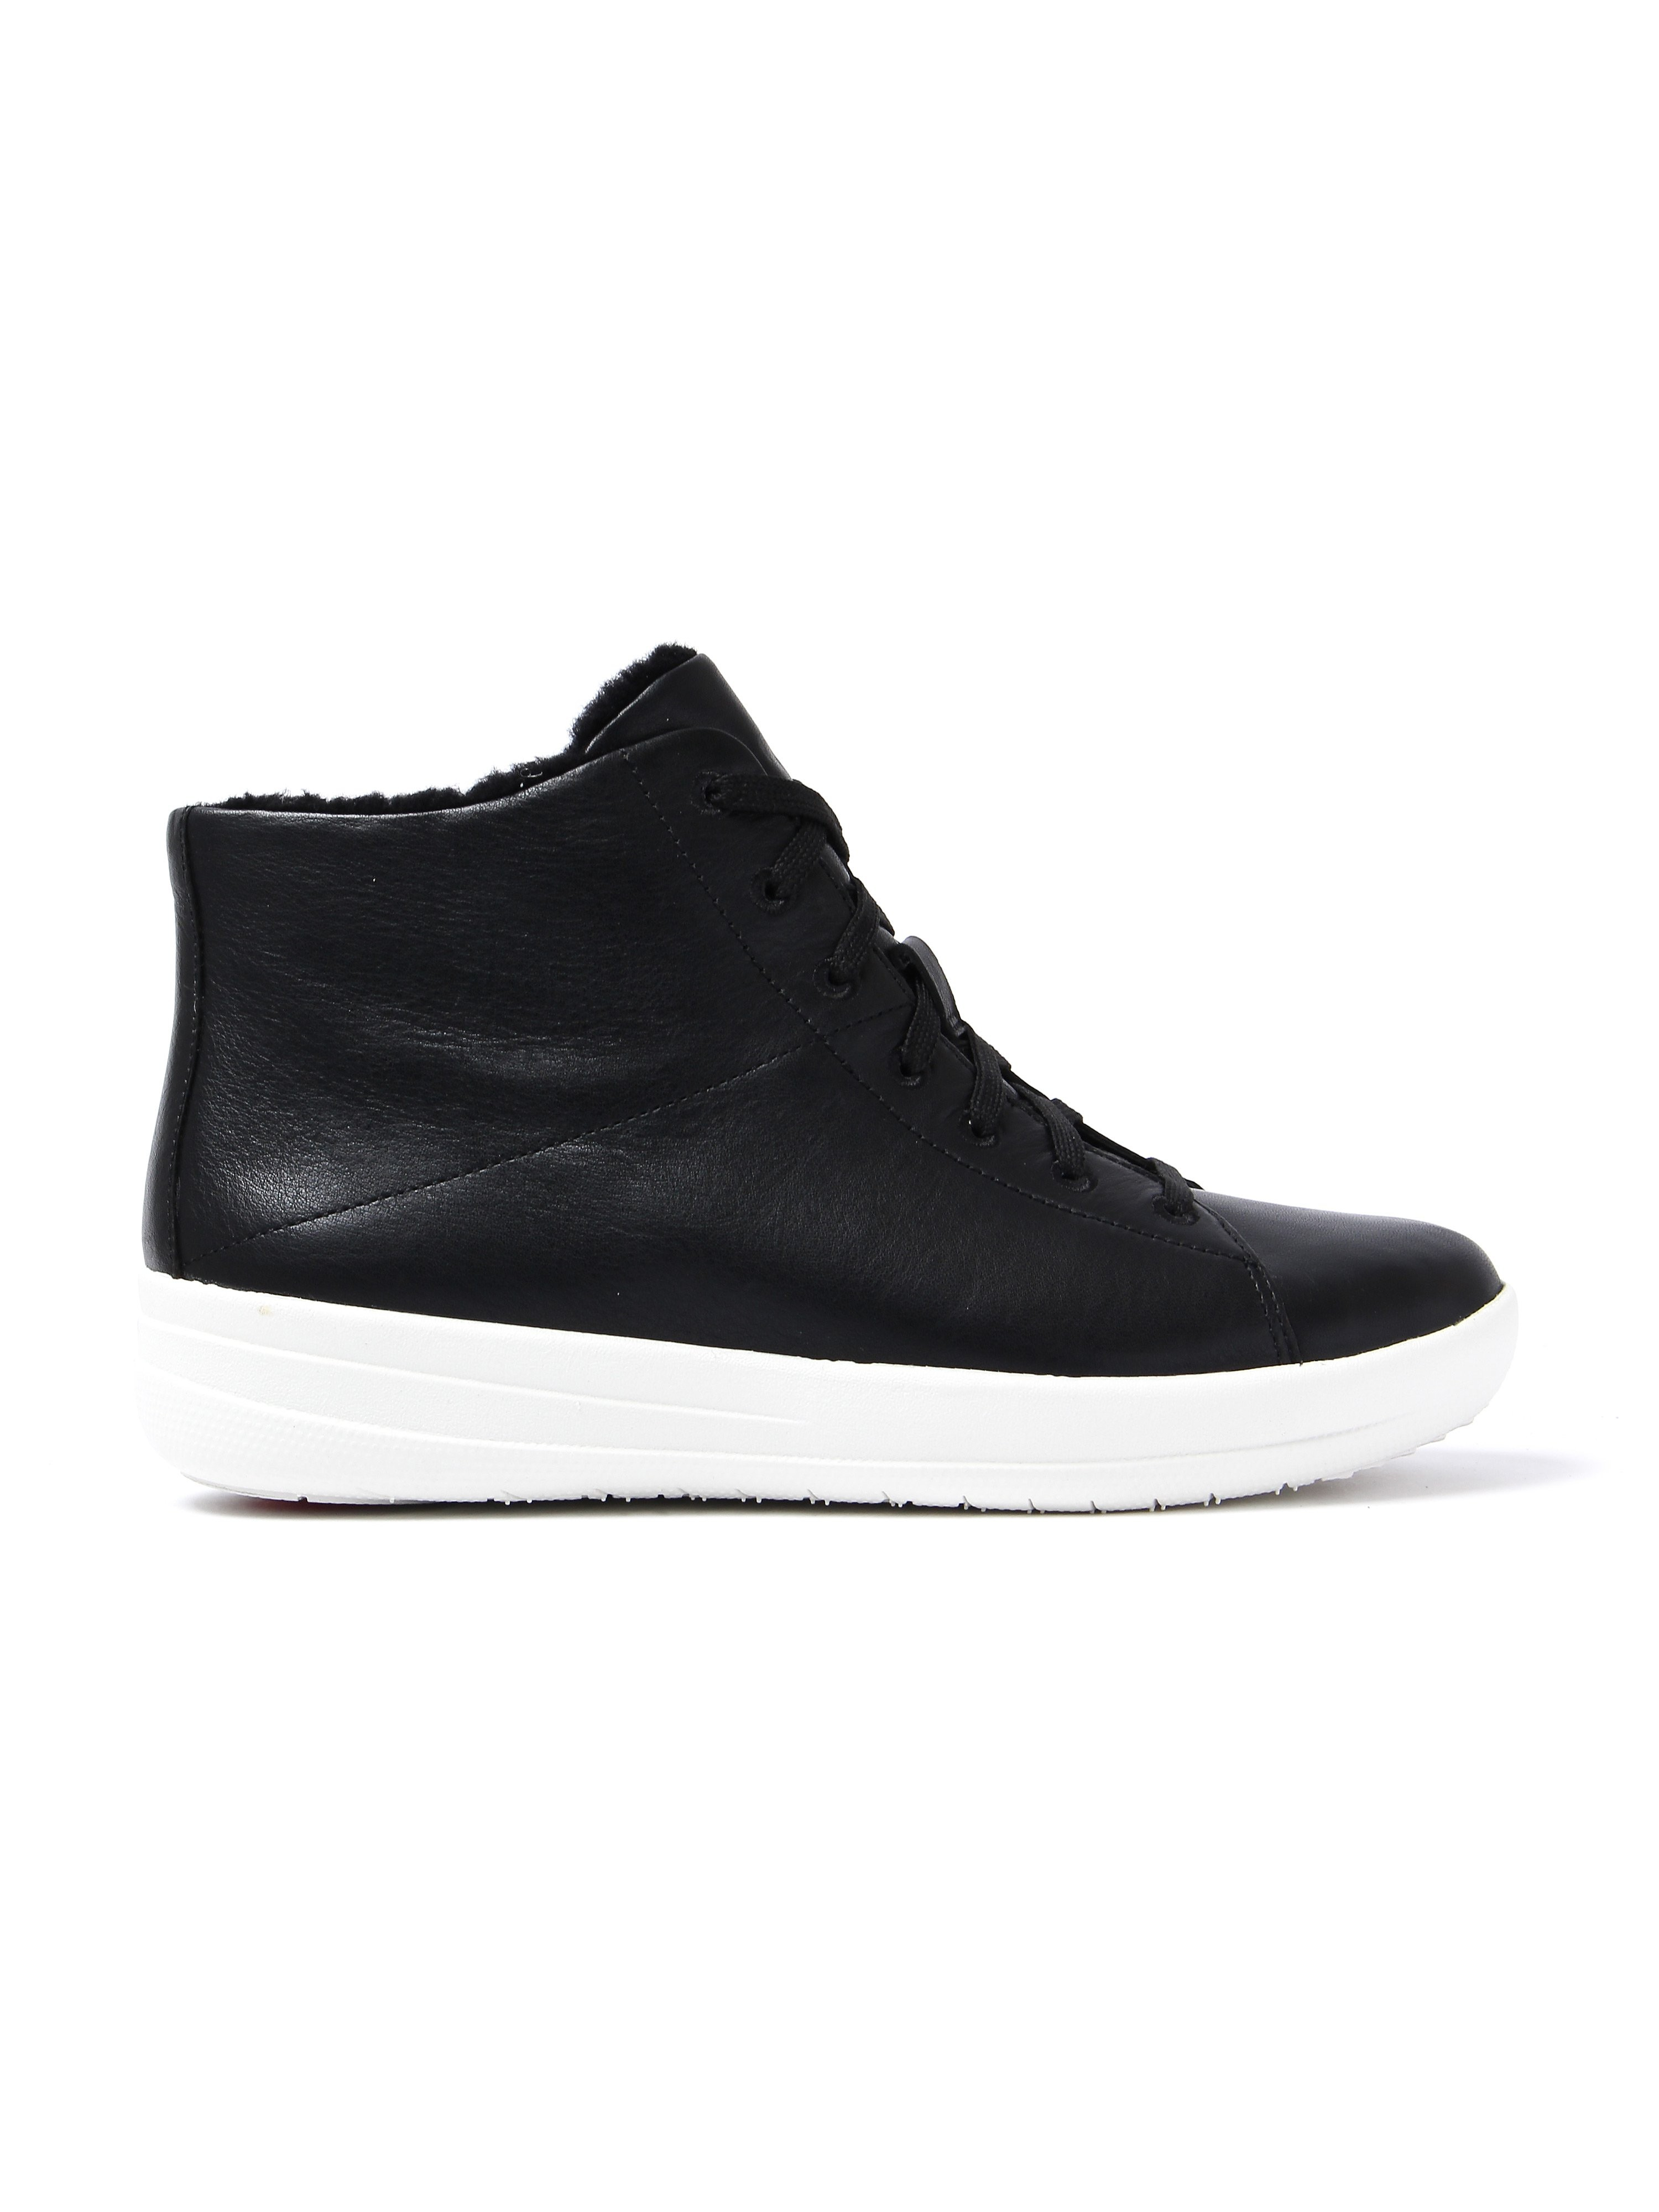 FitFlop Women's F-Sporty Sneakerboots - Black